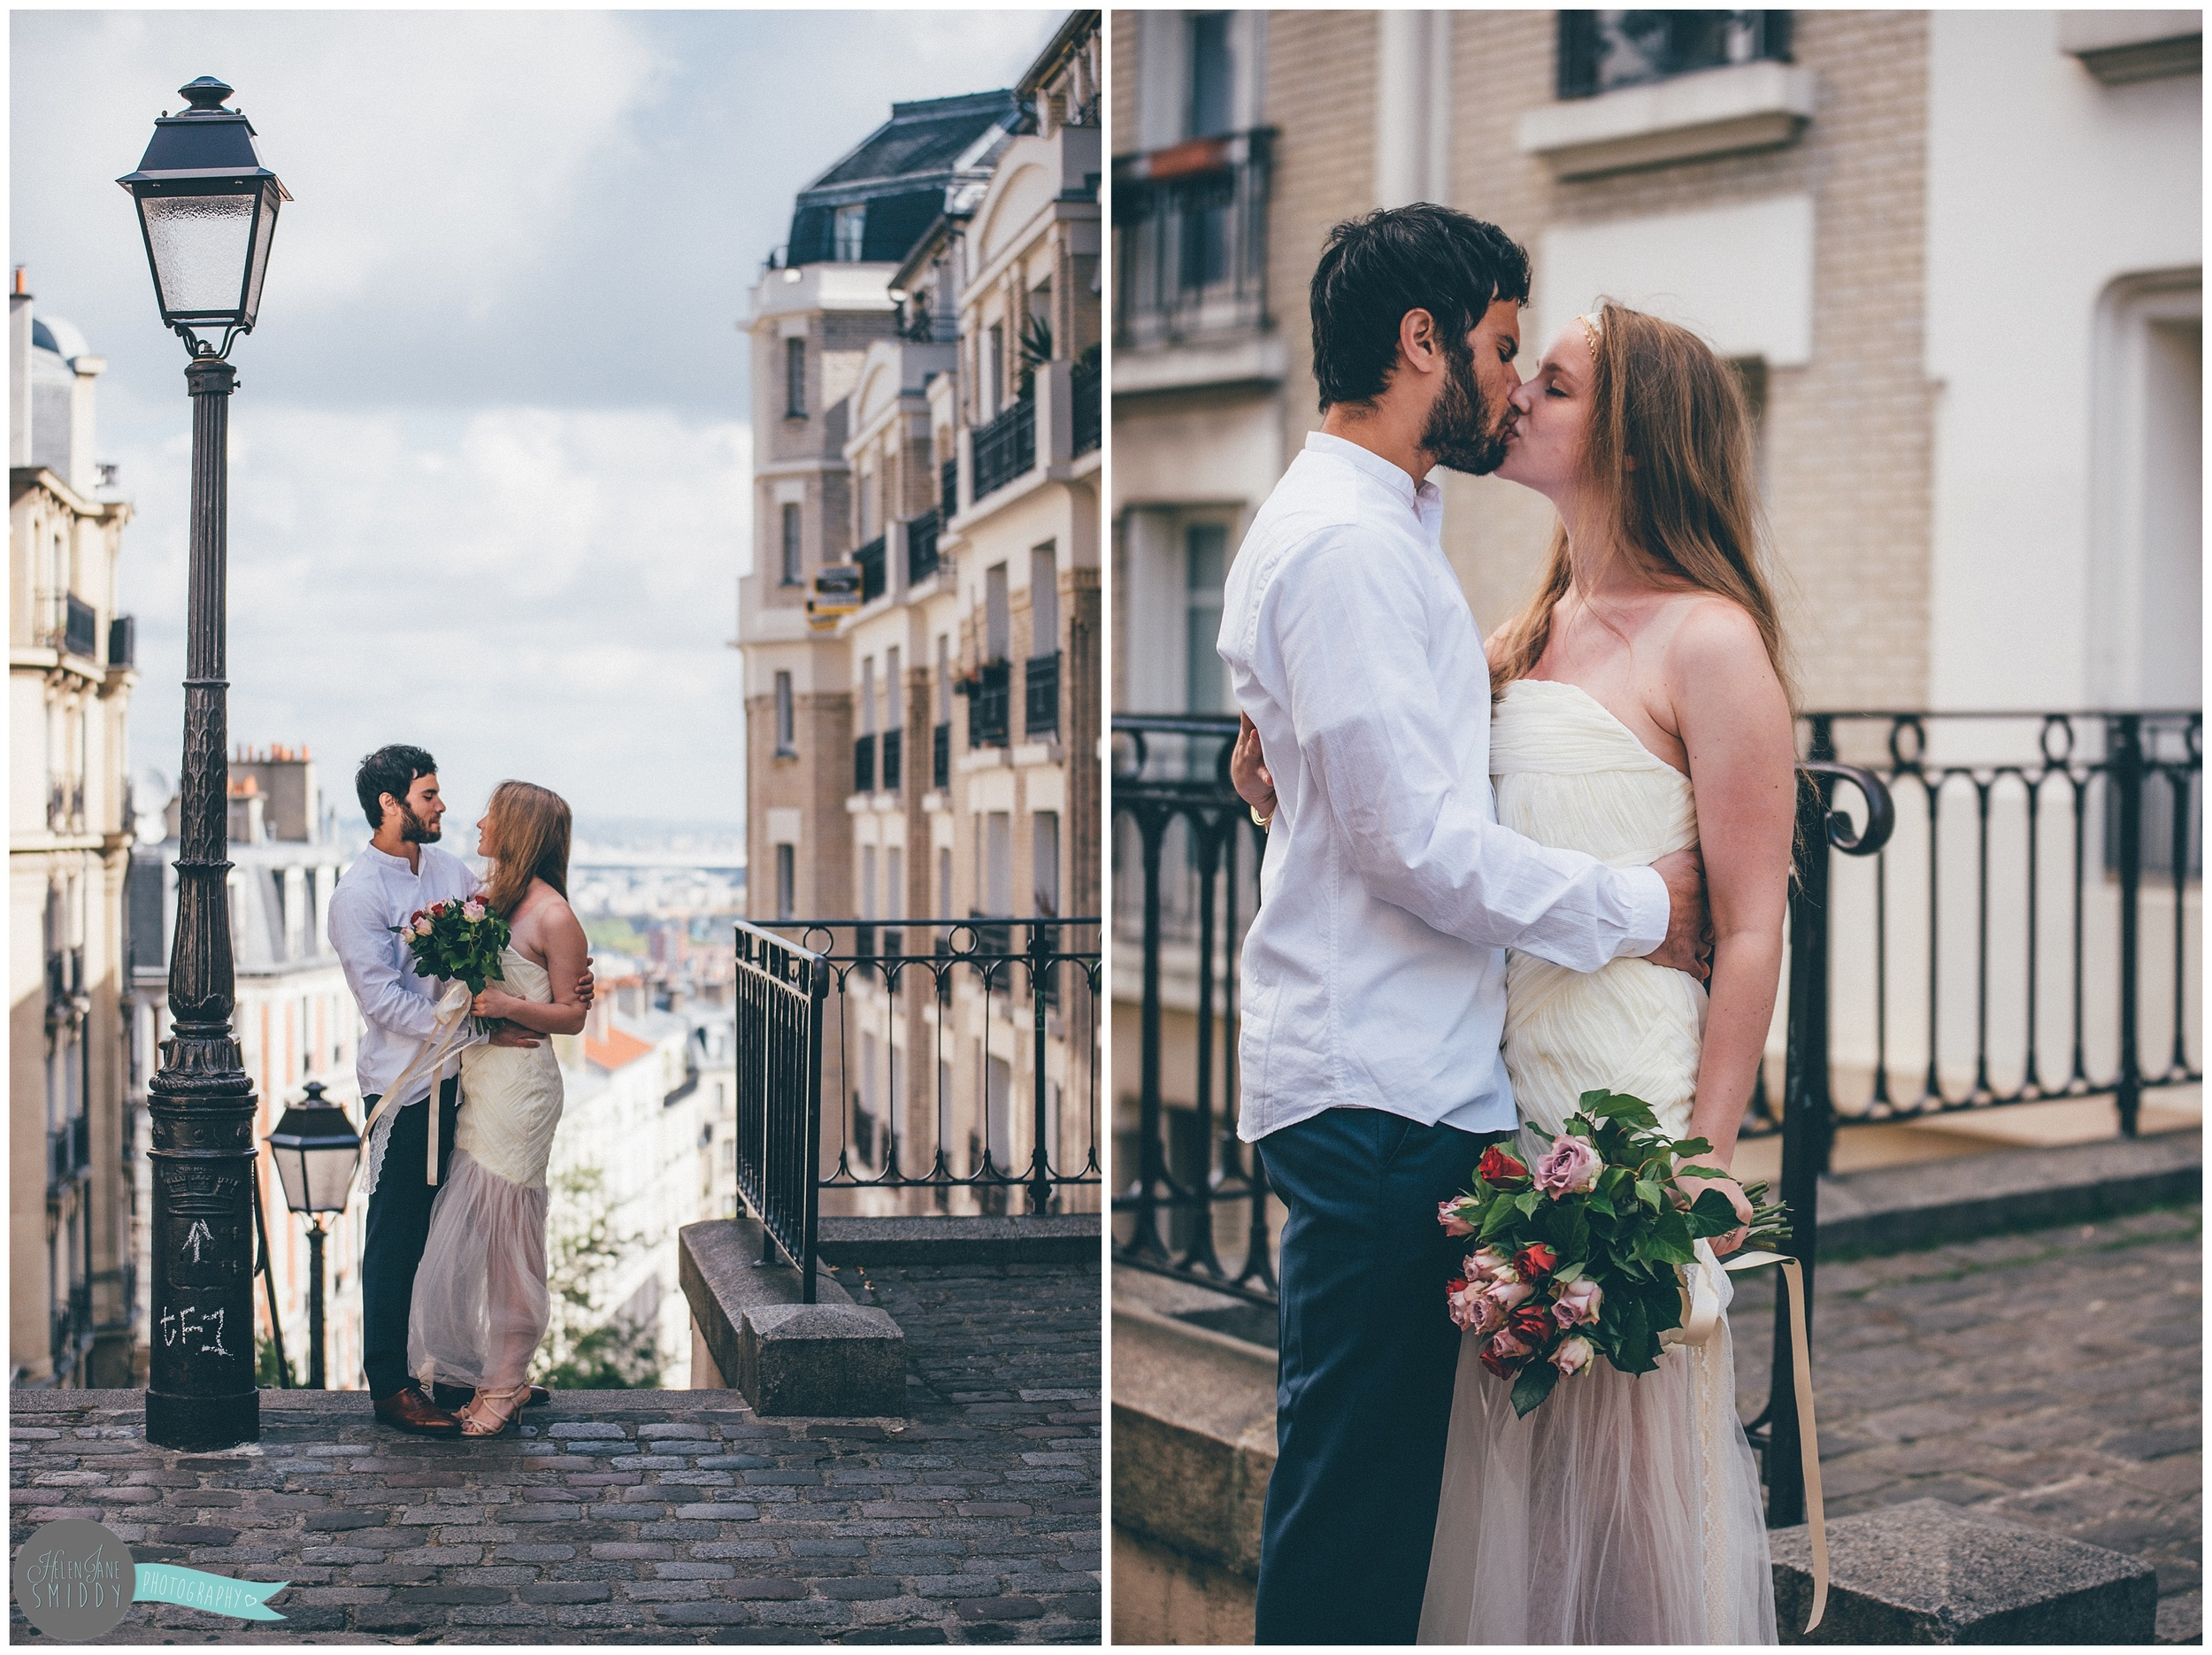 Paris-Montmartre-france-destination-wedding-photographer-styled-shoot-wedding-photography-beautiful-love-marriage-city-of-love-model-french